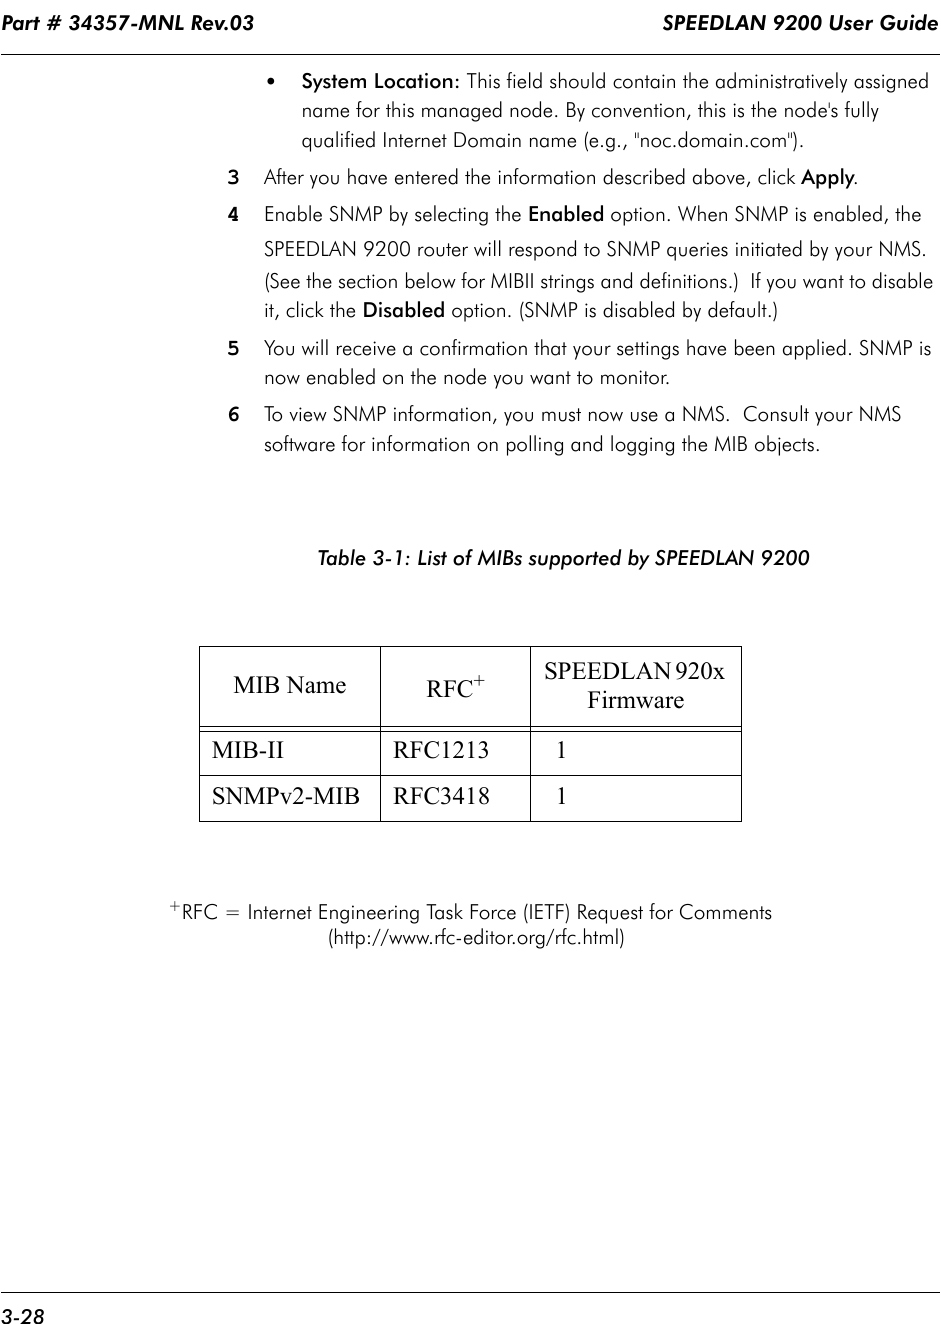 """Part # 34357-MNL Rev.03                                                                   SPEEDLAN 9200 User Guide 3-28•System Location: This field should contain the administratively assigned name for this managed node. By convention, this is the node's fully qualified Internet Domain name (e.g., """"noc.domain.com"""").3After you have entered the information described above, click Apply.4Enable SNMP by selecting the Enabled option. When SNMP is enabled, the SPEEDLAN 9200 router will respond to SNMP queries initiated by your NMS. (See the section below for MIBII strings and definitions.)  If you want to disable it, click the Disabled option. (SNMP is disabled by default.)5You will receive a confirmation that your settings have been applied. SNMP is now enabled on the node you want to monitor. 6To view SNMP information, you must now use a NMS.  Consult your NMS software for information on polling and logging the MIB objects.Table 3-1: List of MIBs supported by SPEEDLAN 9200+RFC = Internet Engineering Task Force (IETF) Request for Comments  (http://www.rfc-editor.org/rfc.html)MIB Name RFC+SPEEDLAN 920x FirmwareMIB-II RFC1213   1SNMPv2-MIB RFC3418   1"""